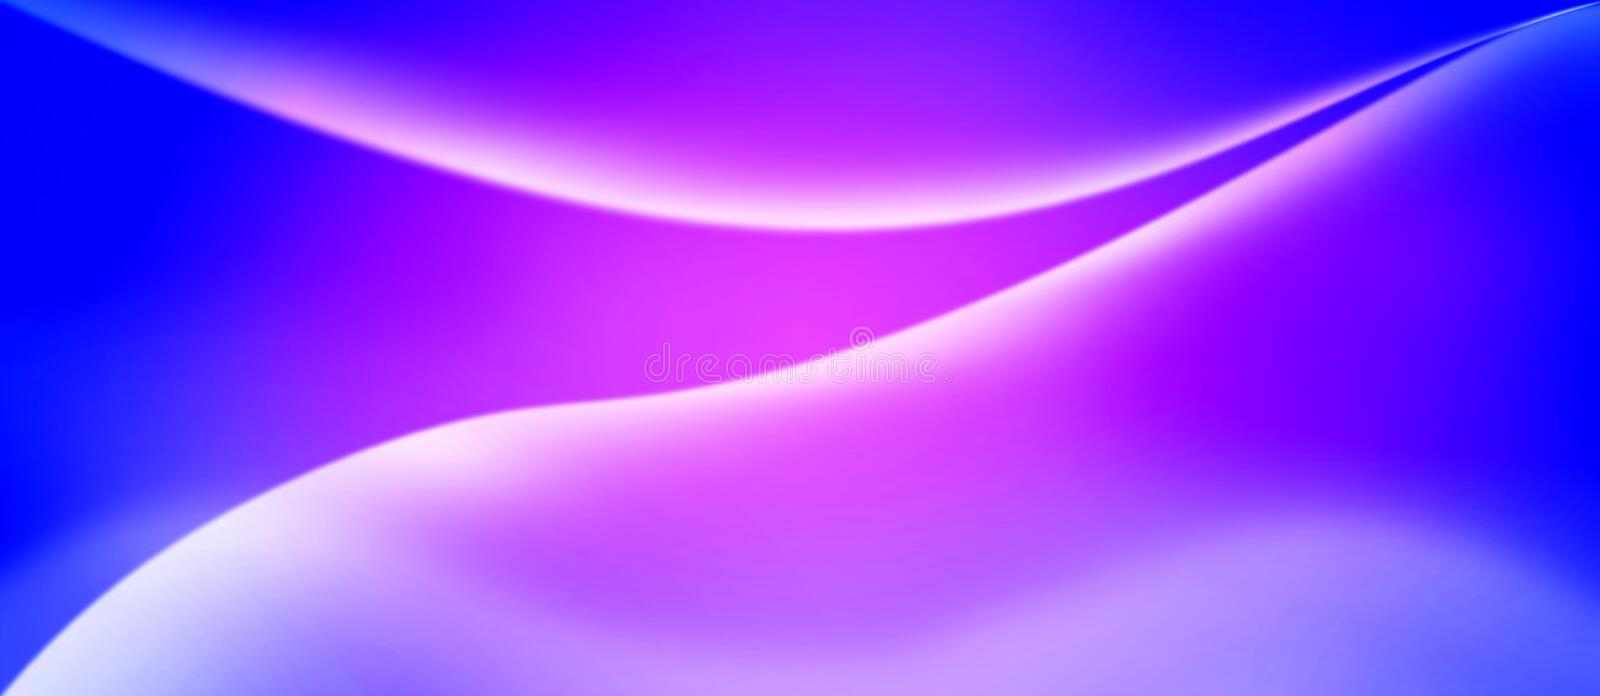 Abstract Shiny Curves in Blurred Blue and Pink Background vector illustration